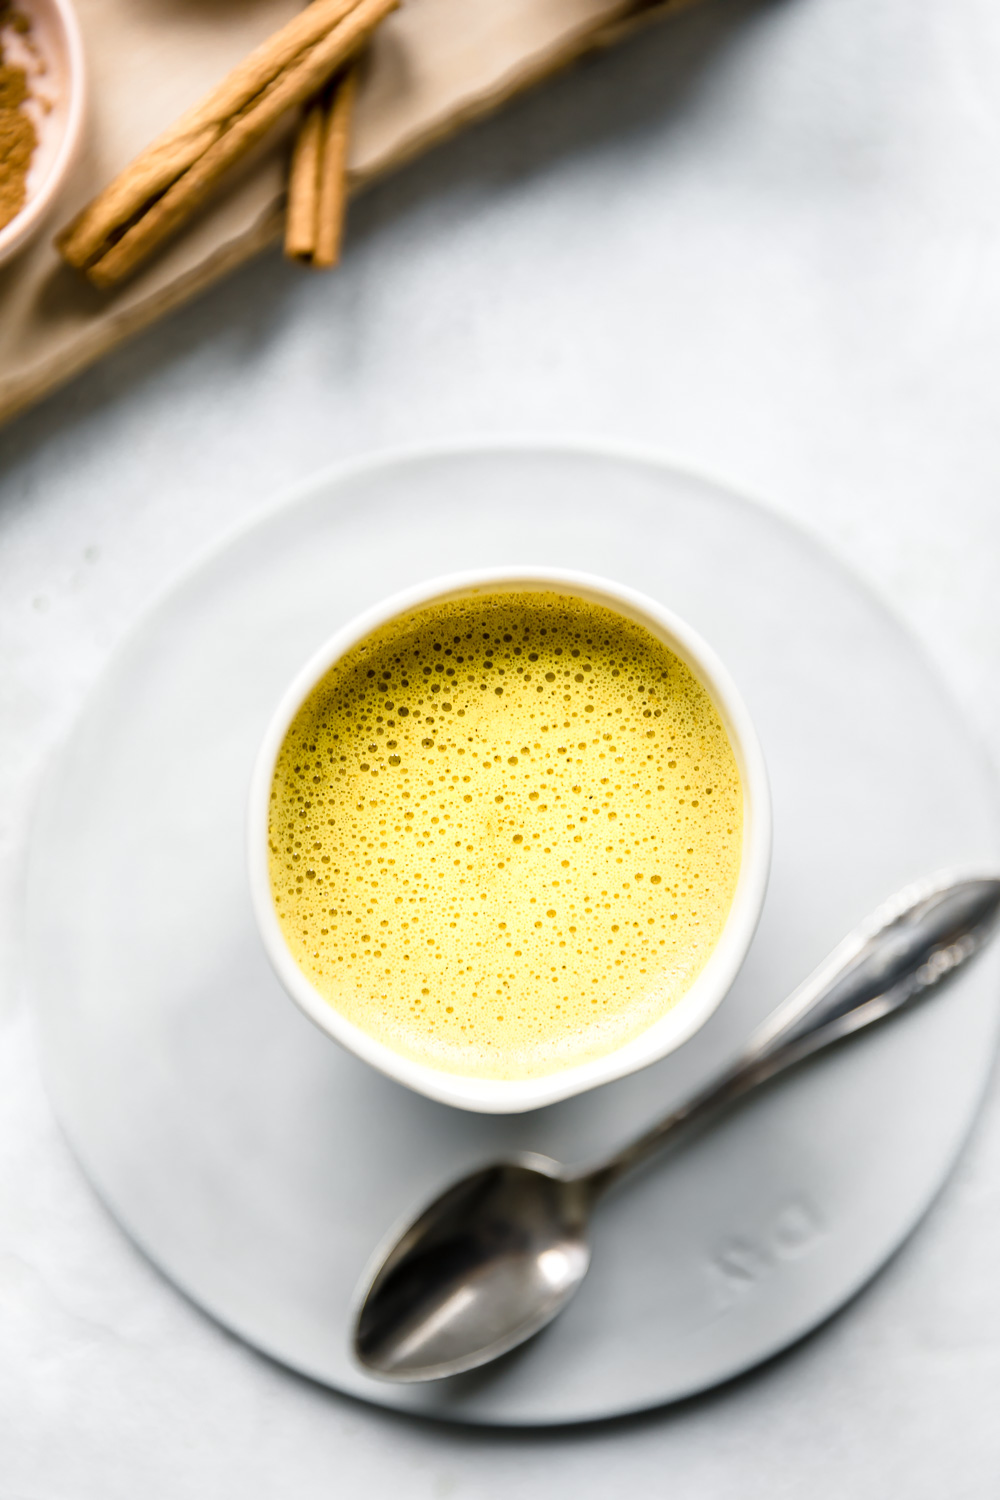 golden milk in white cup on a small white plate next to a silver teaspoon